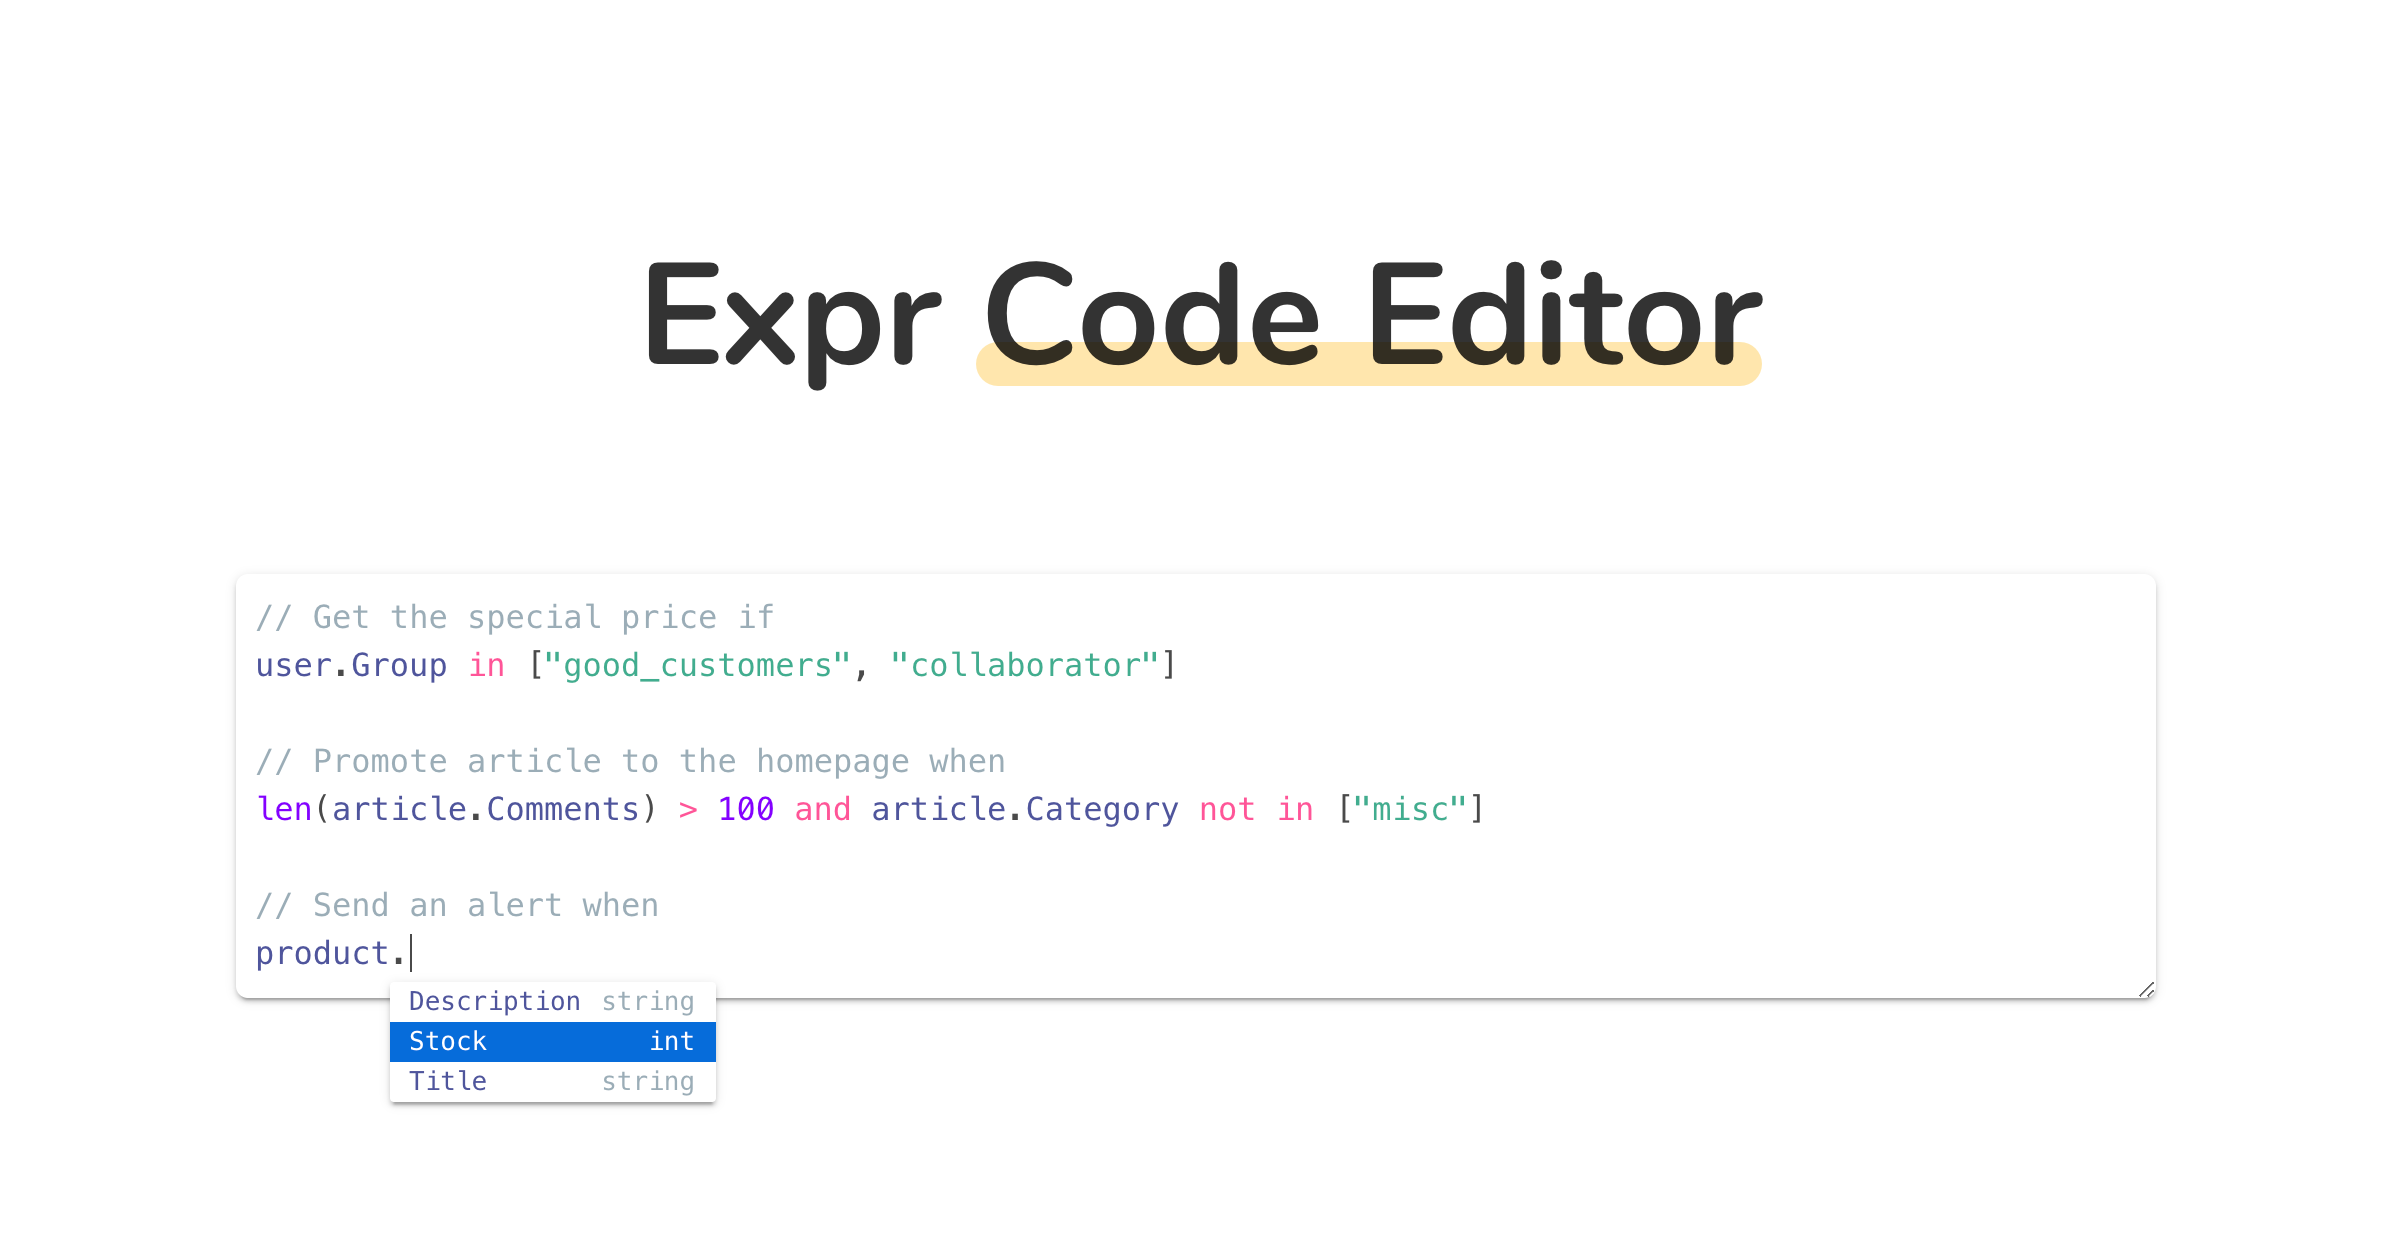 Expr Code Editor